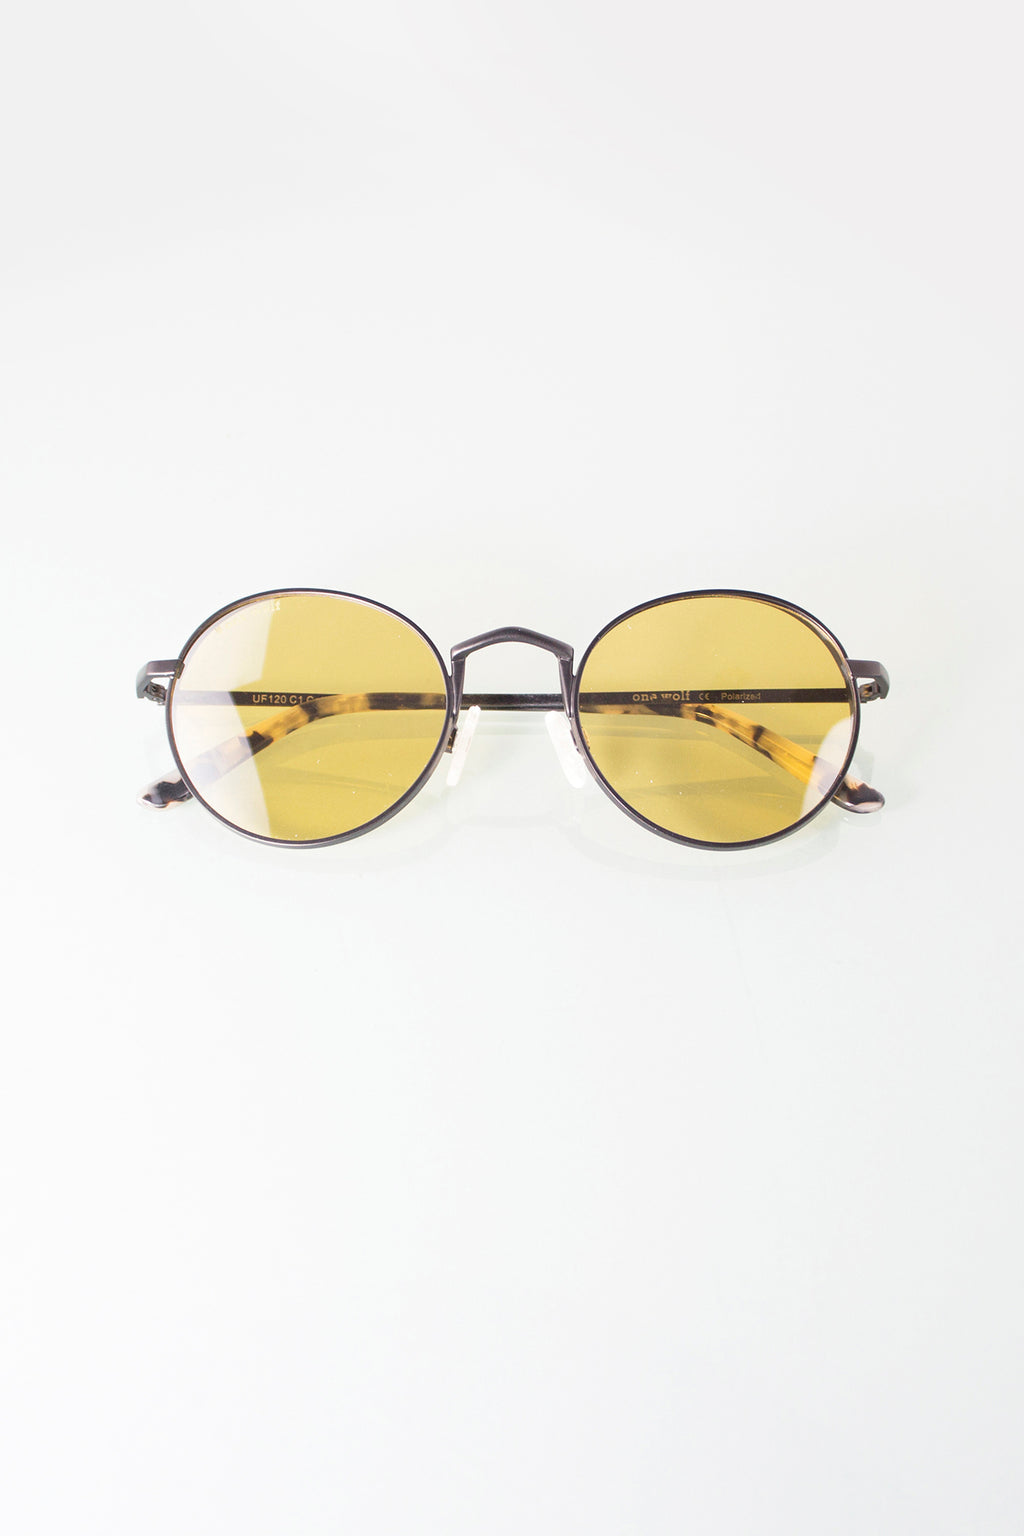 Sunglasses BLAZING YELLOW - One Wolf